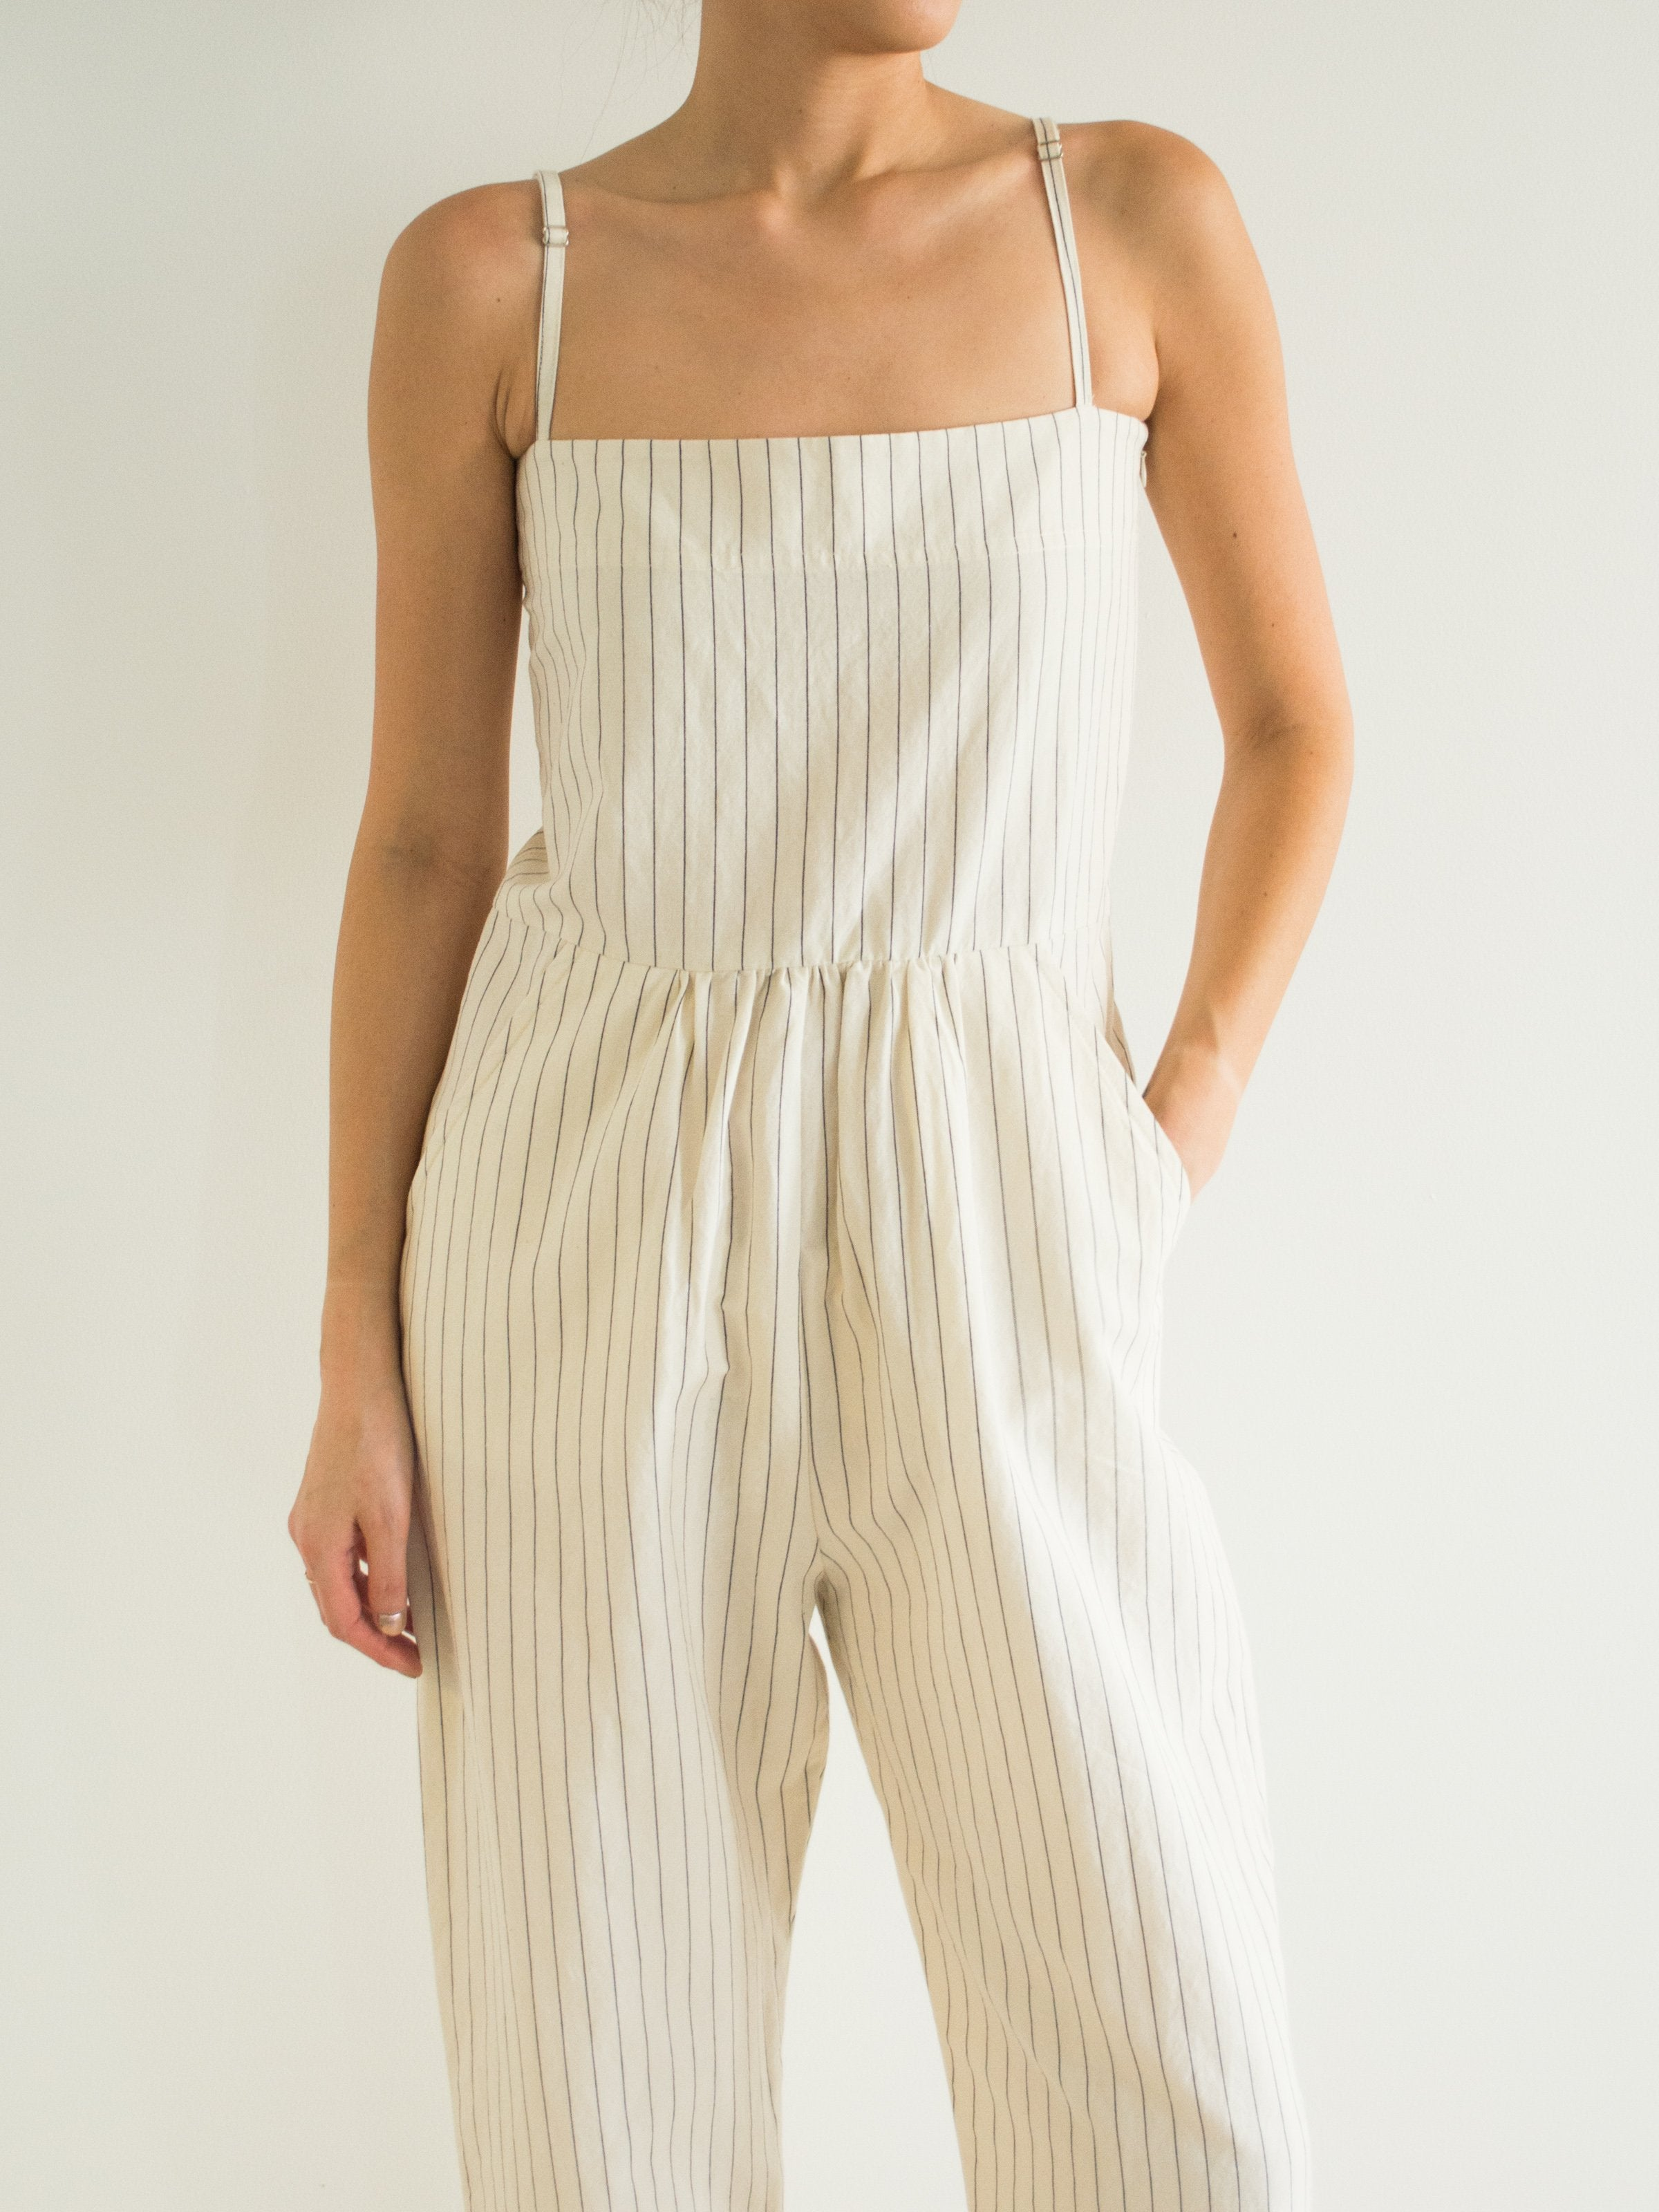 Namu Shop - Caron Callahan Bethany Jumpsuit in Stripe